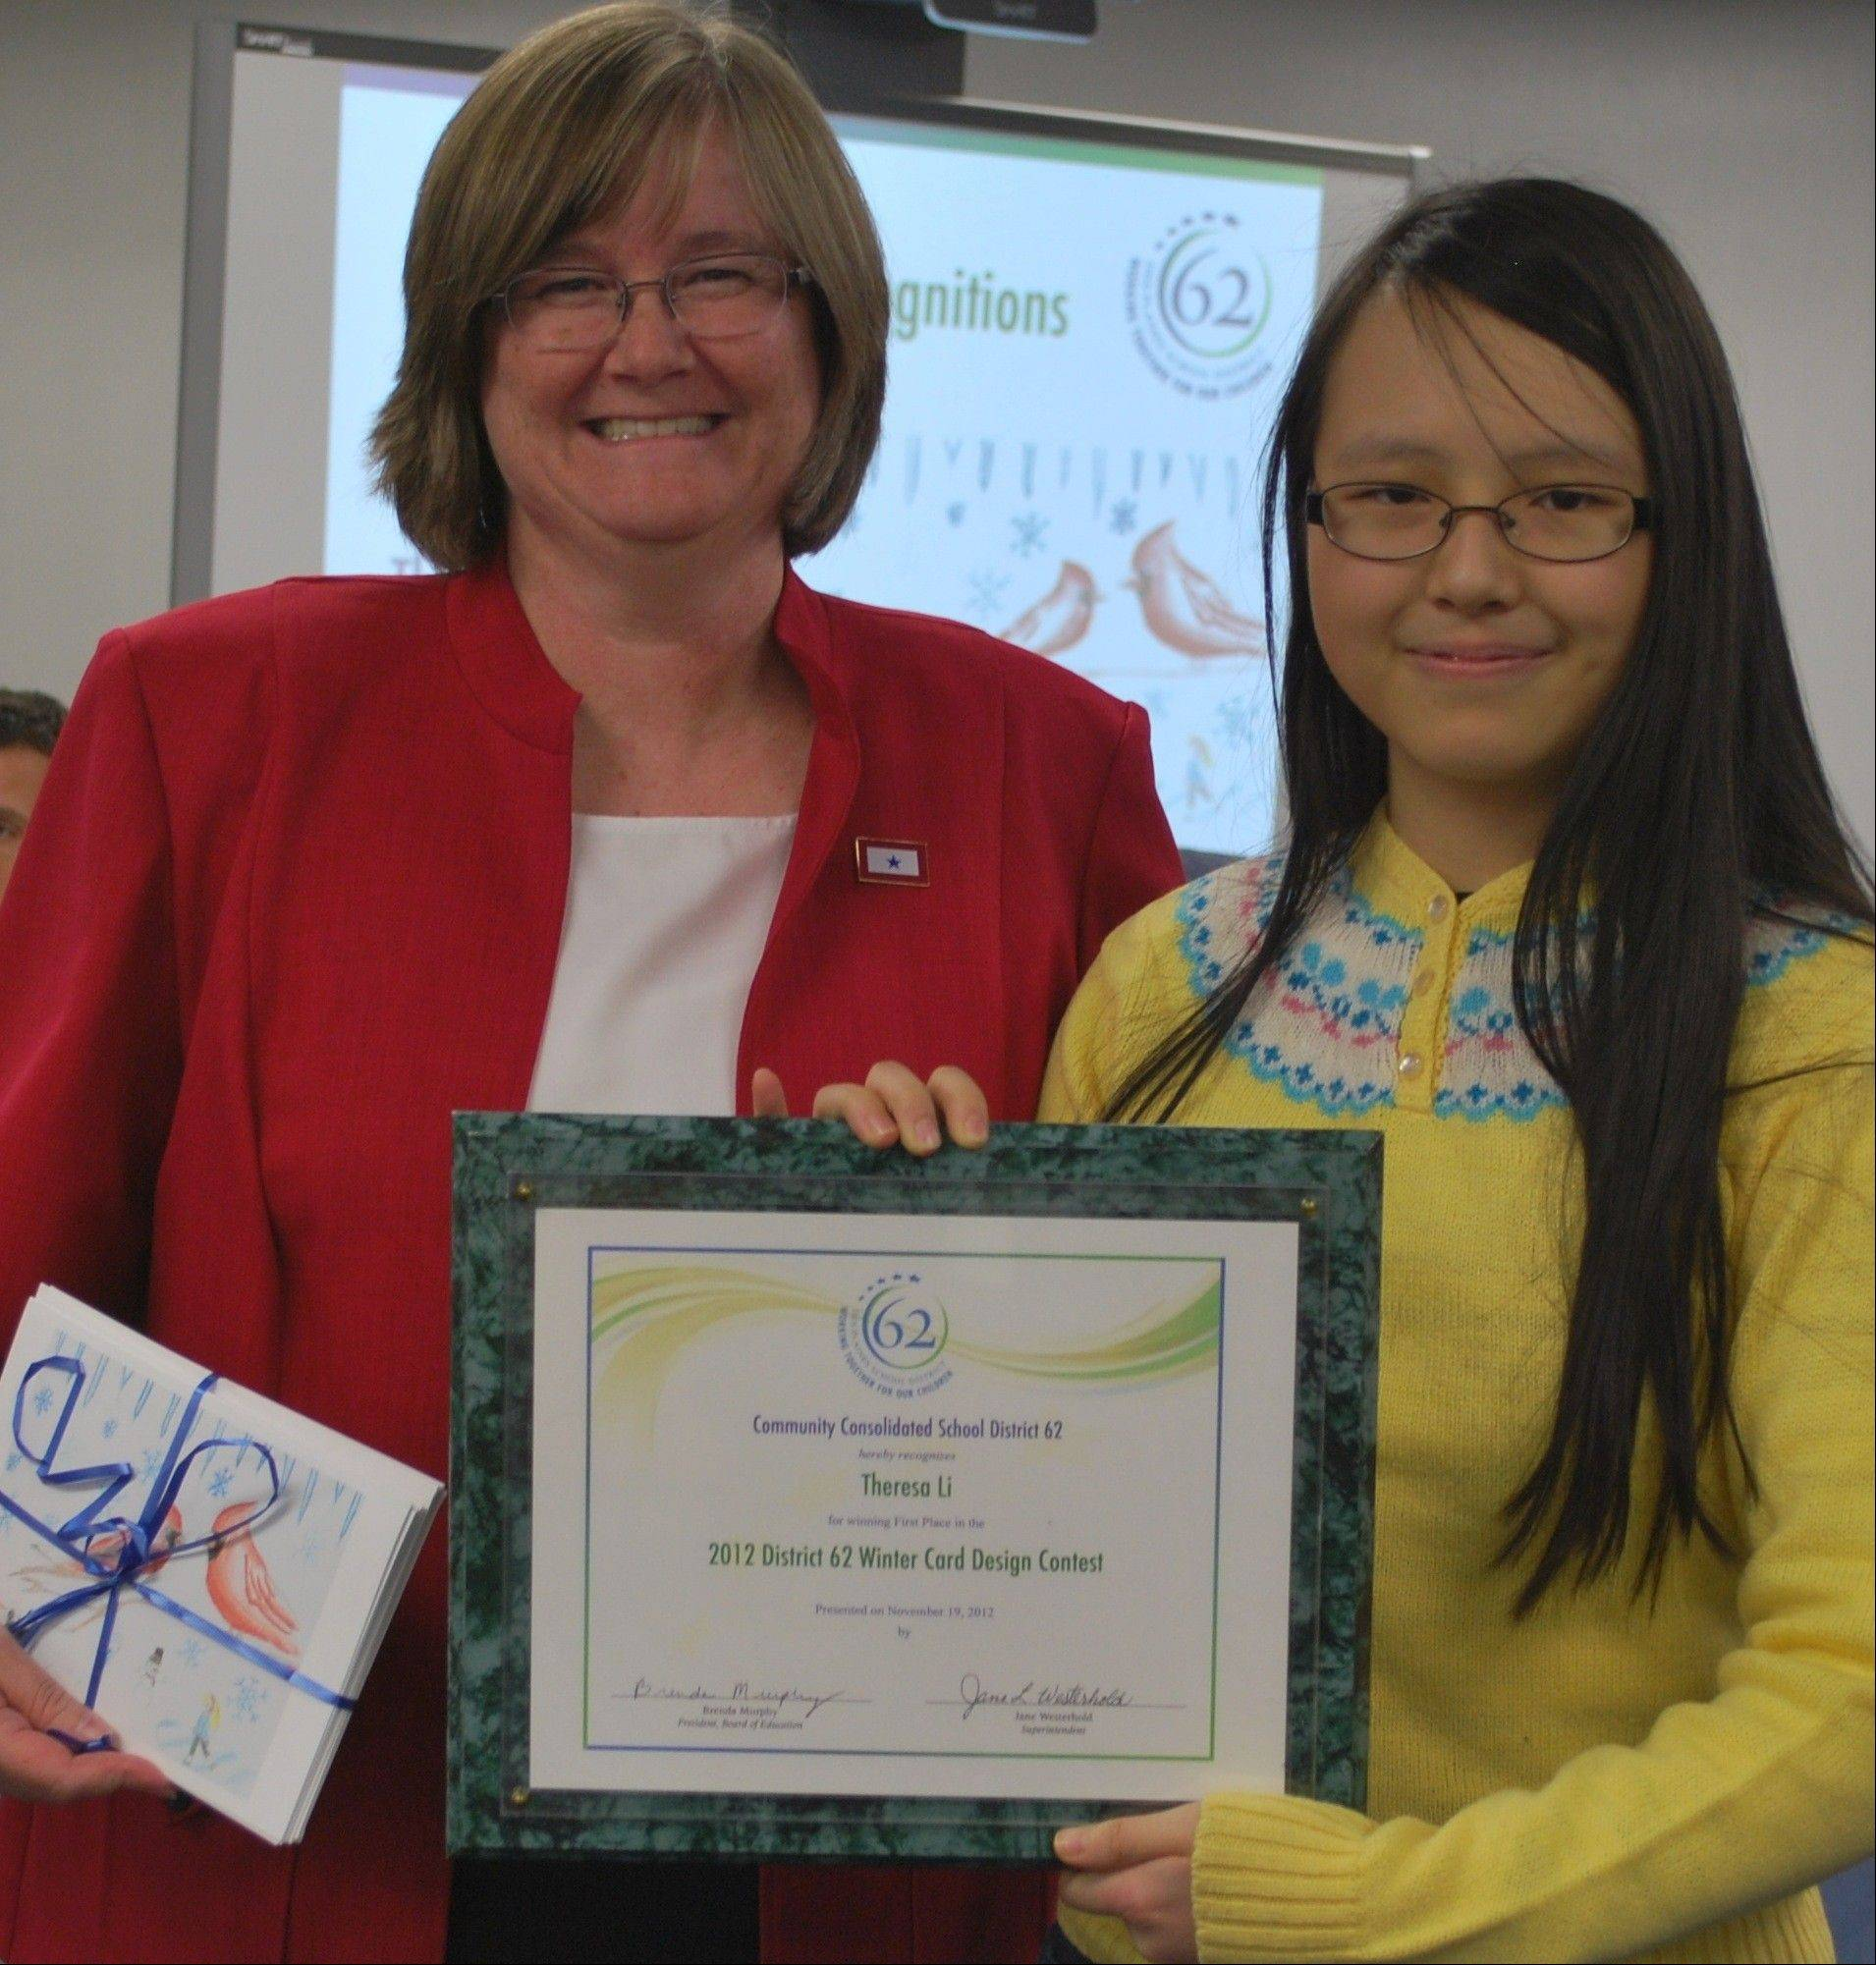 District 62 School Board President Brenda Murphy awards Algonquin Middle School student Theresa Li first place in the 2012 District 62 Winter Card Design Contest.